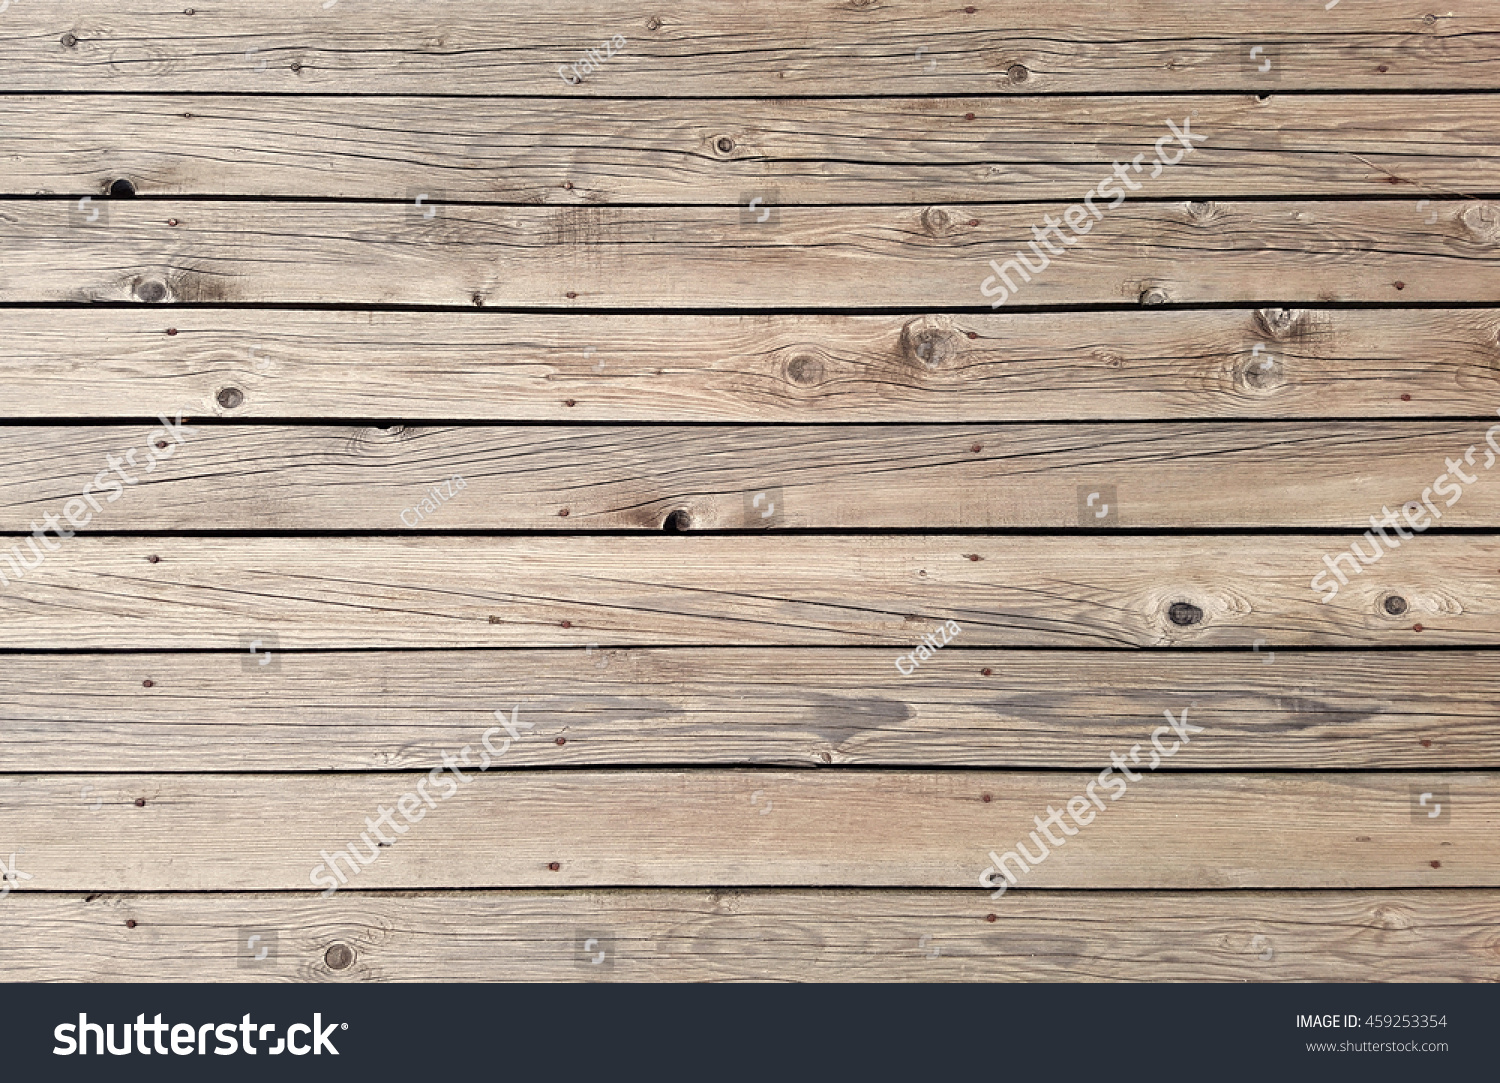 horizontal wood background. Horizontal Wooden Planks Deck Texture Background Stock Photo (Royalty Free) 459253354 - Shutterstock Wood